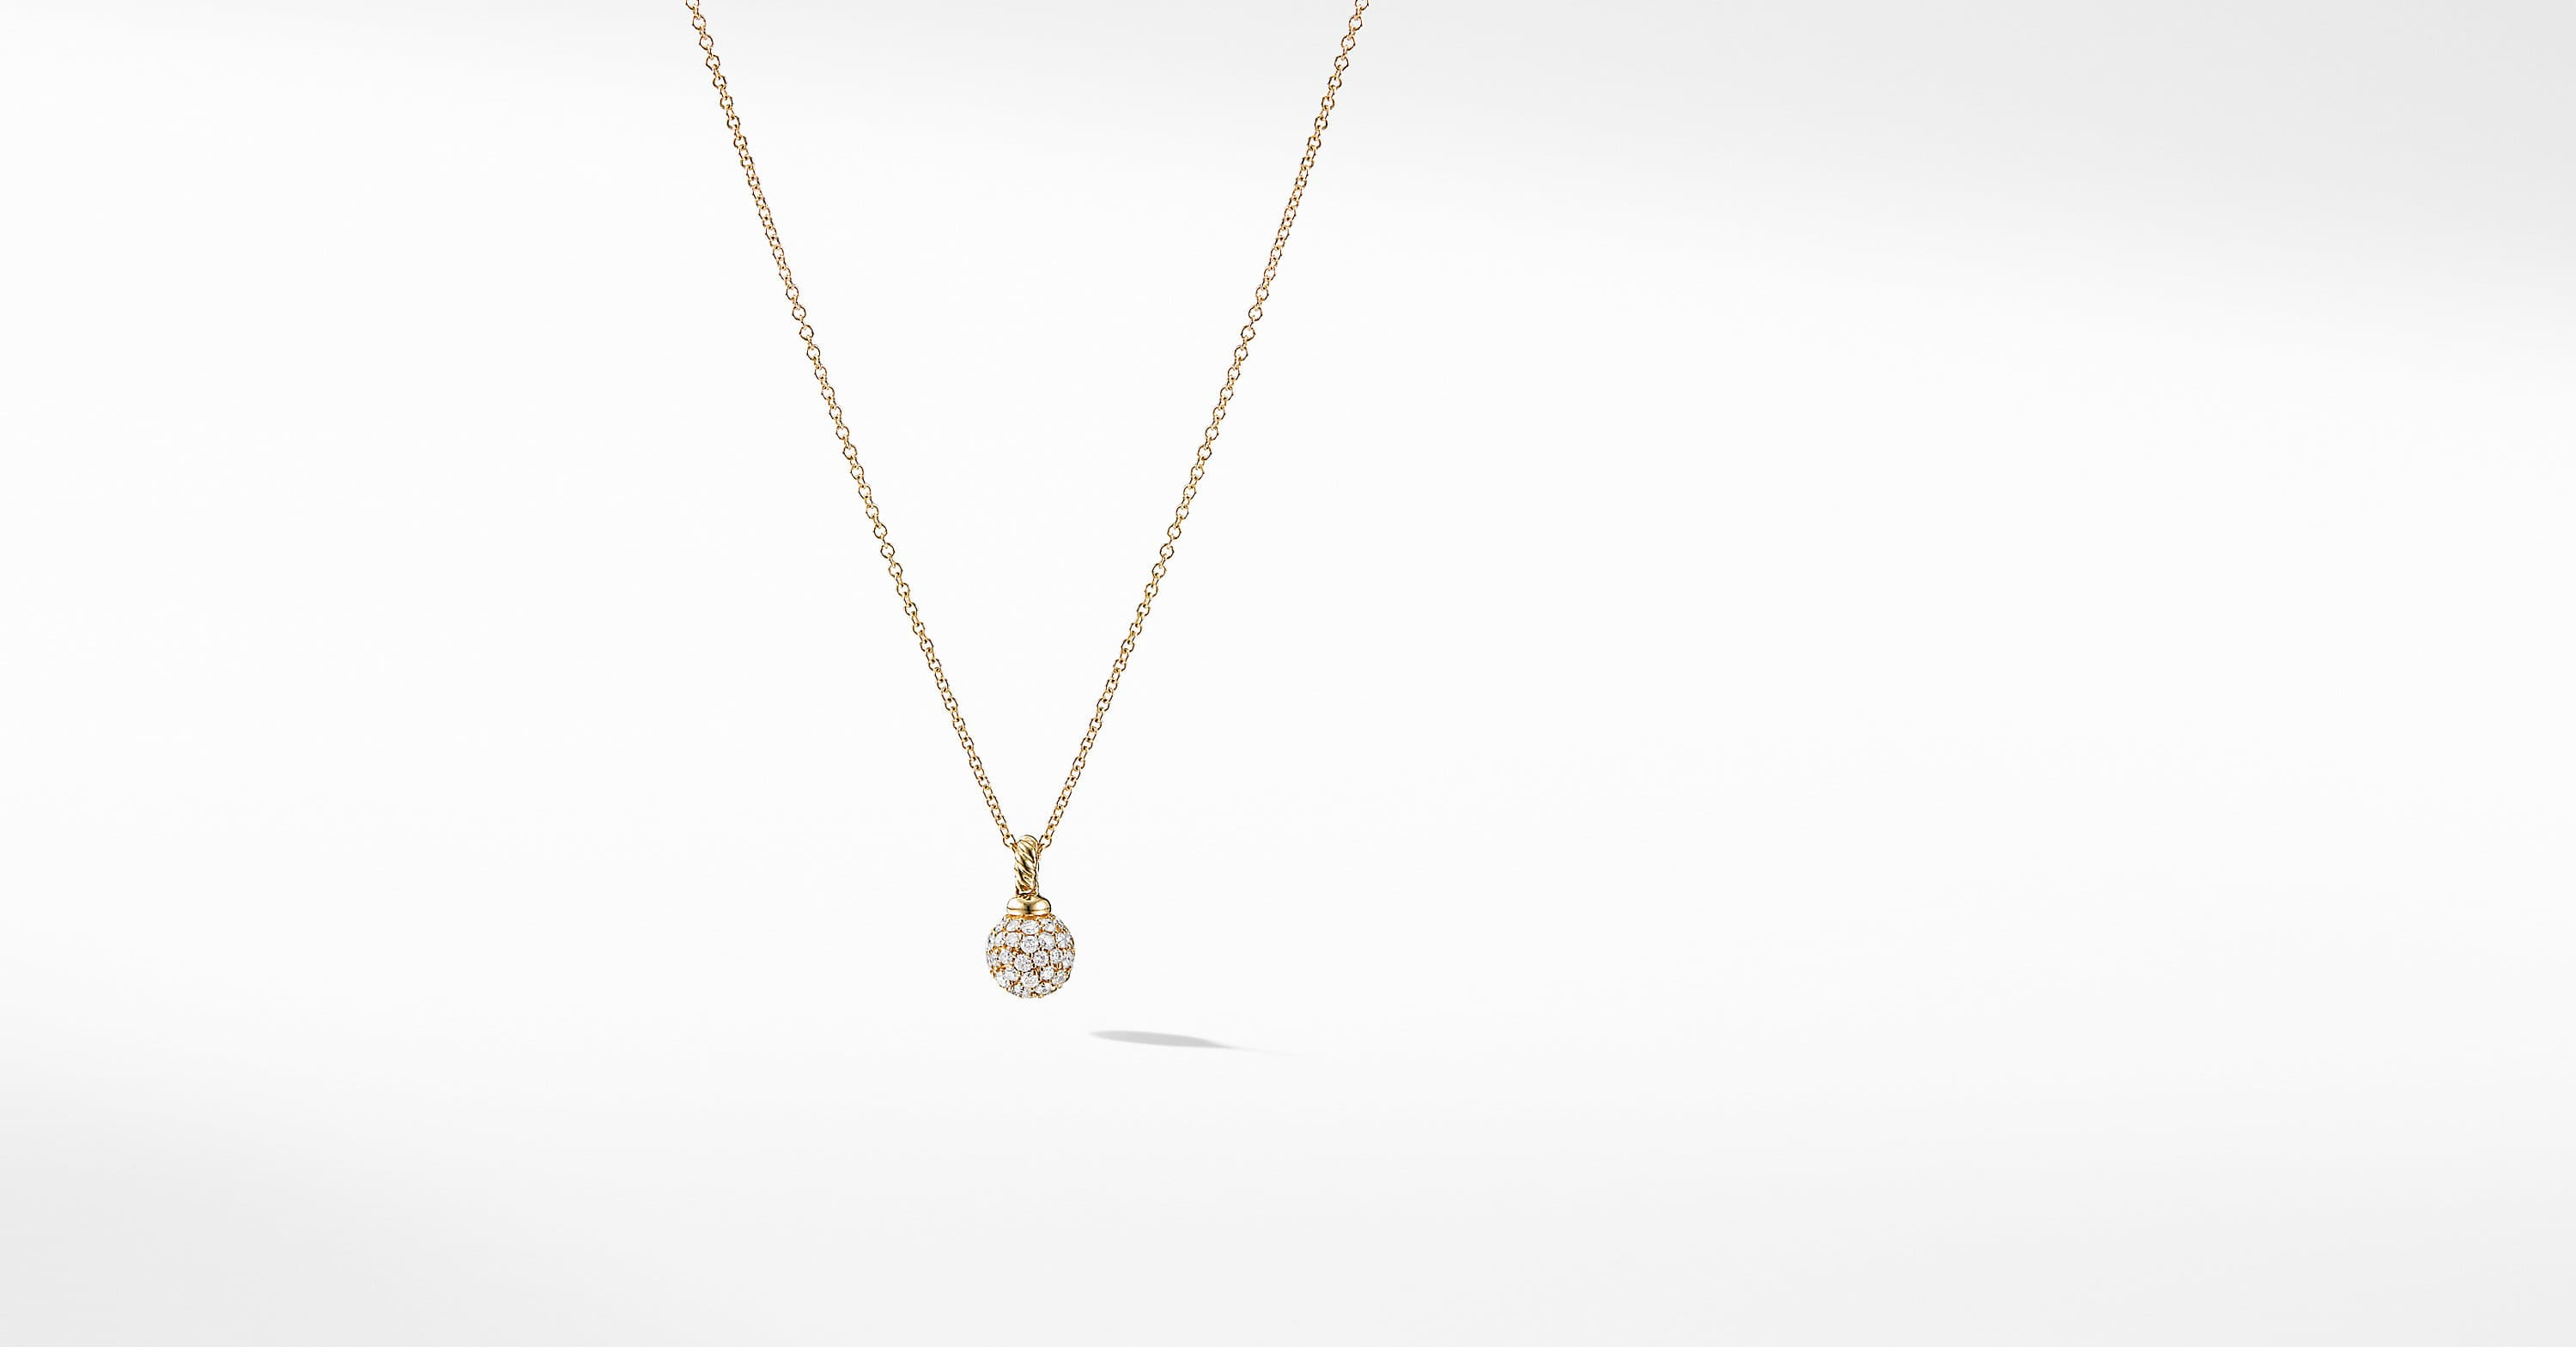 Petite Solari Pavé Pendant Necklace with Diamonds in 18K Gold